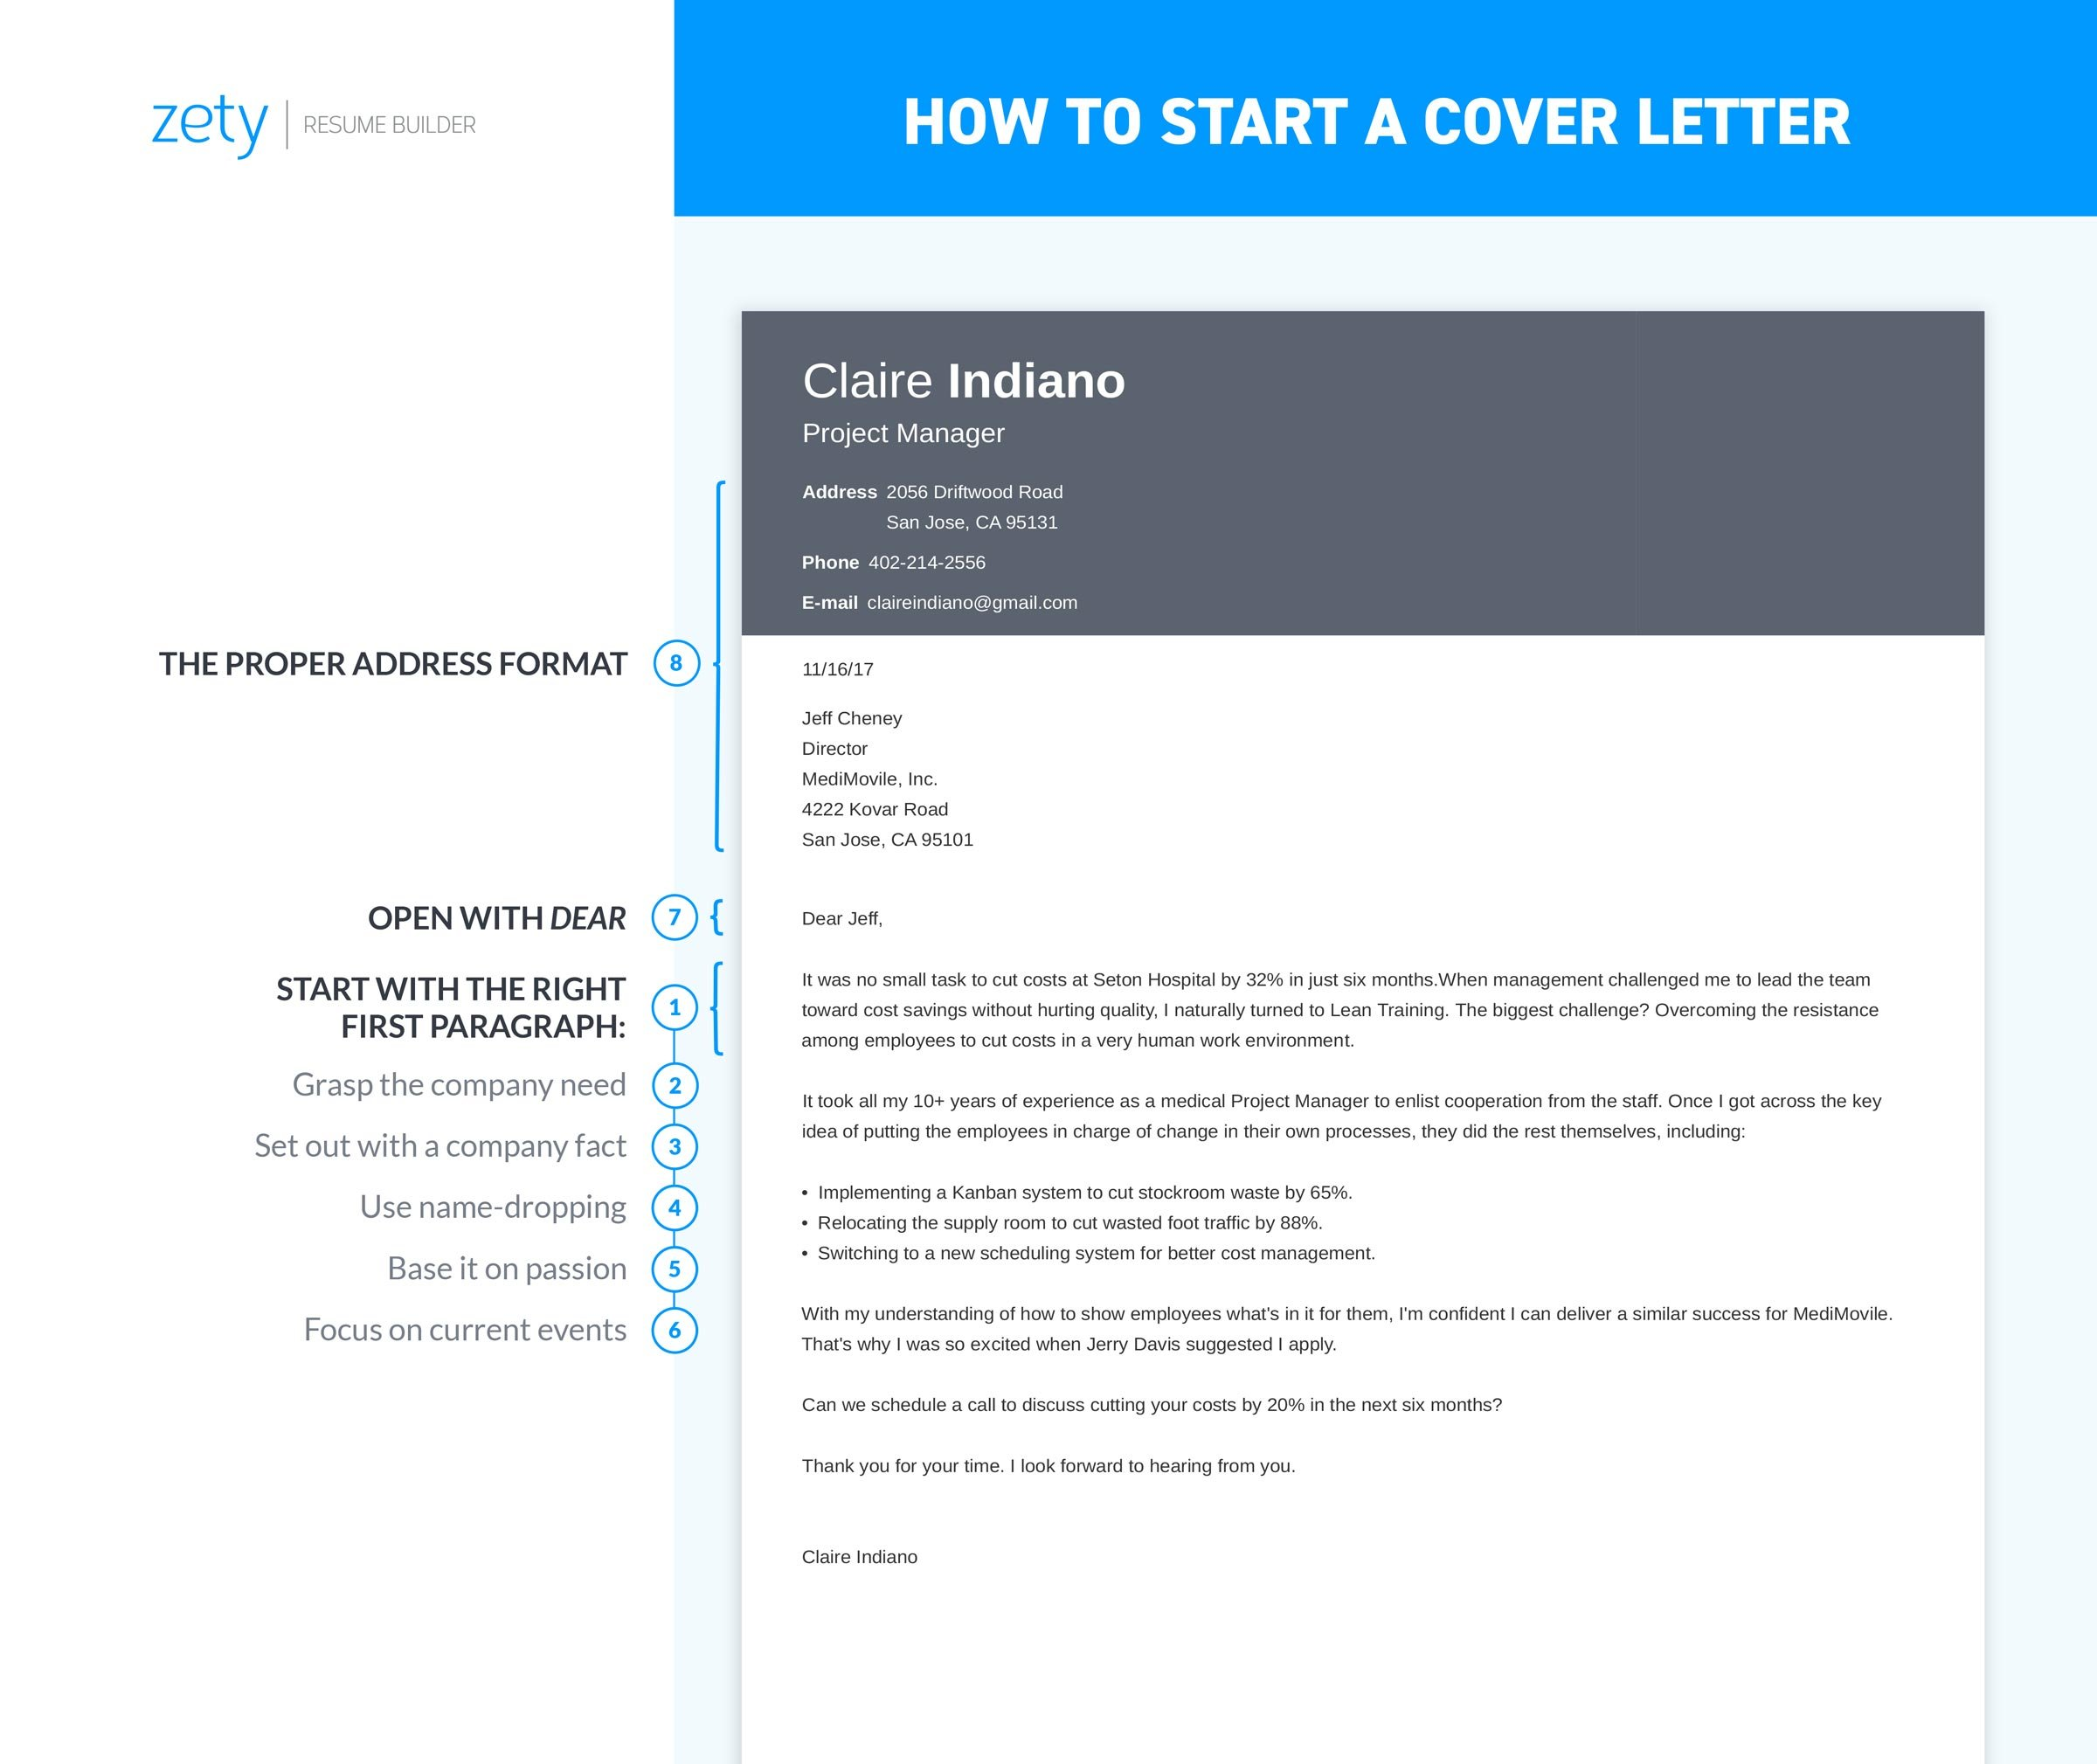 How to start a cover letter sample complete guide 20 for Proper way to start a cover letter